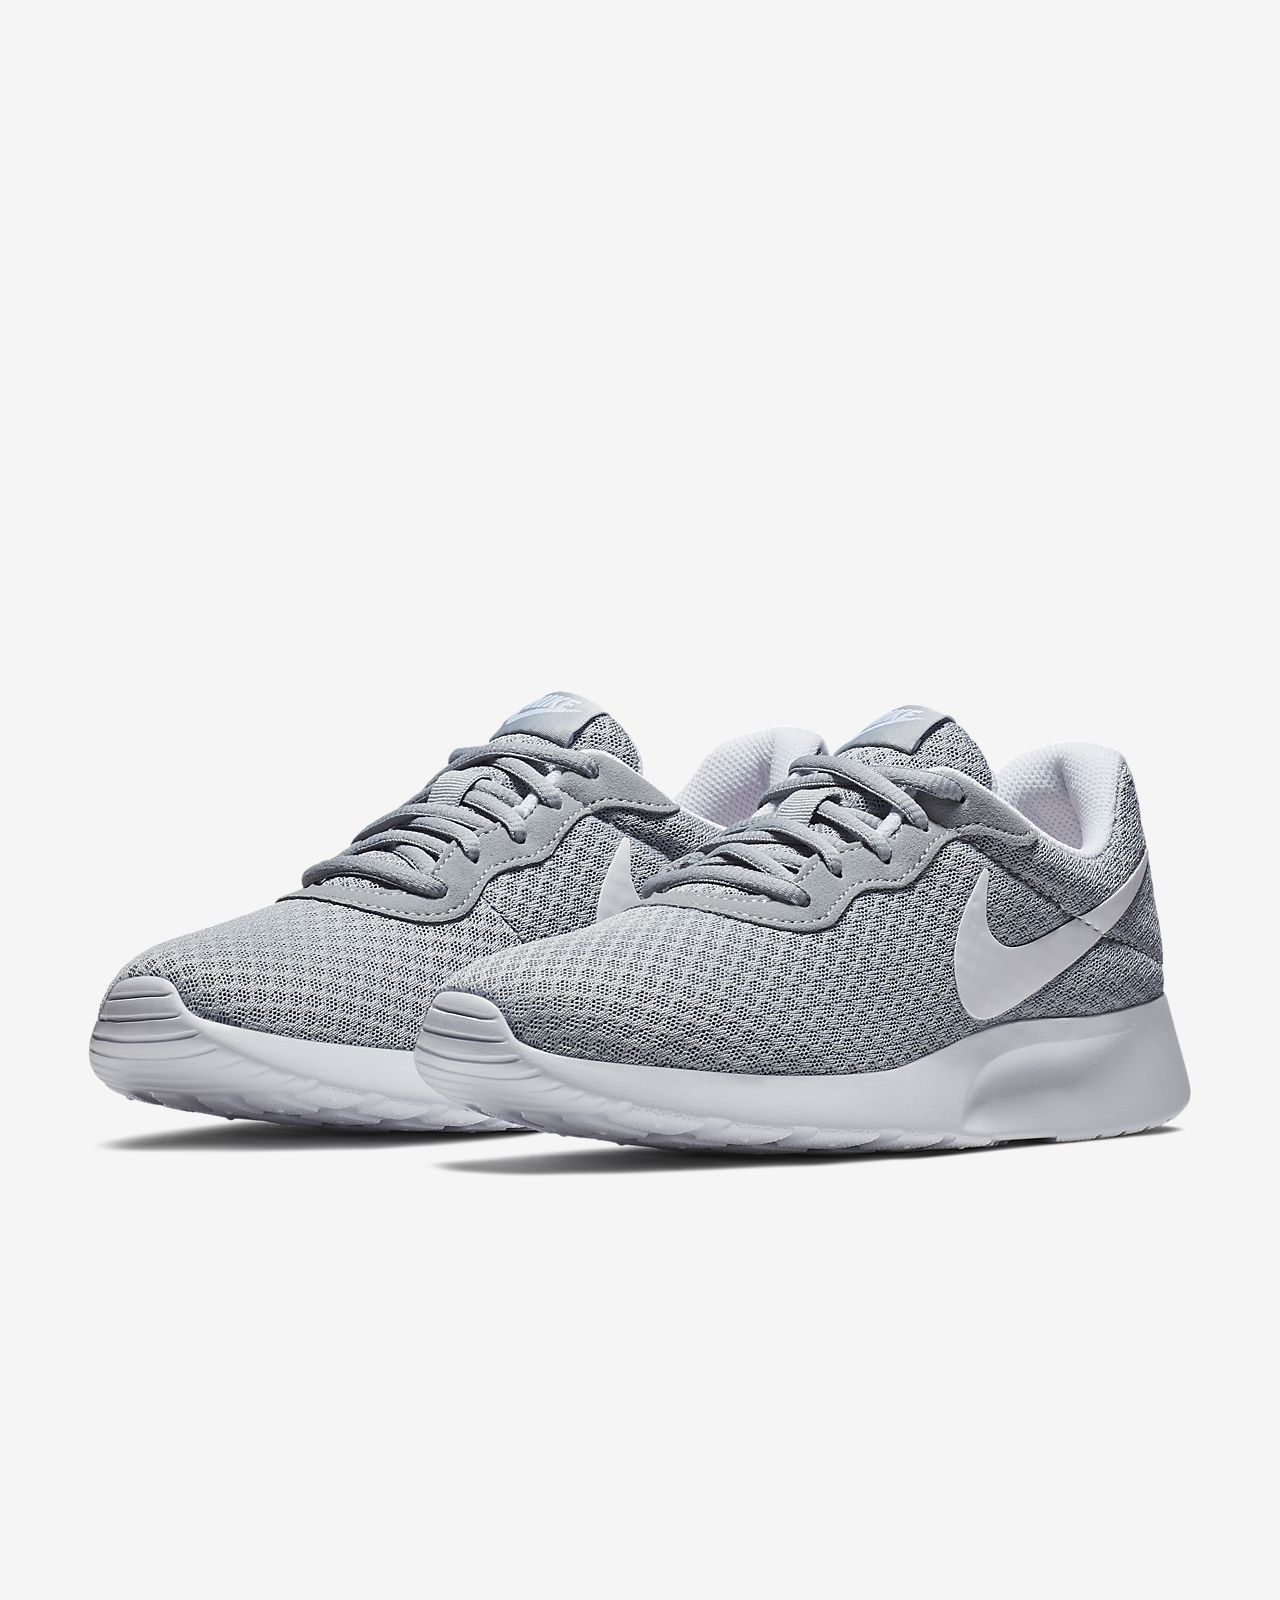 best loved 360d8 48fbe ... Chaussure Nike Tanjun pour Femme